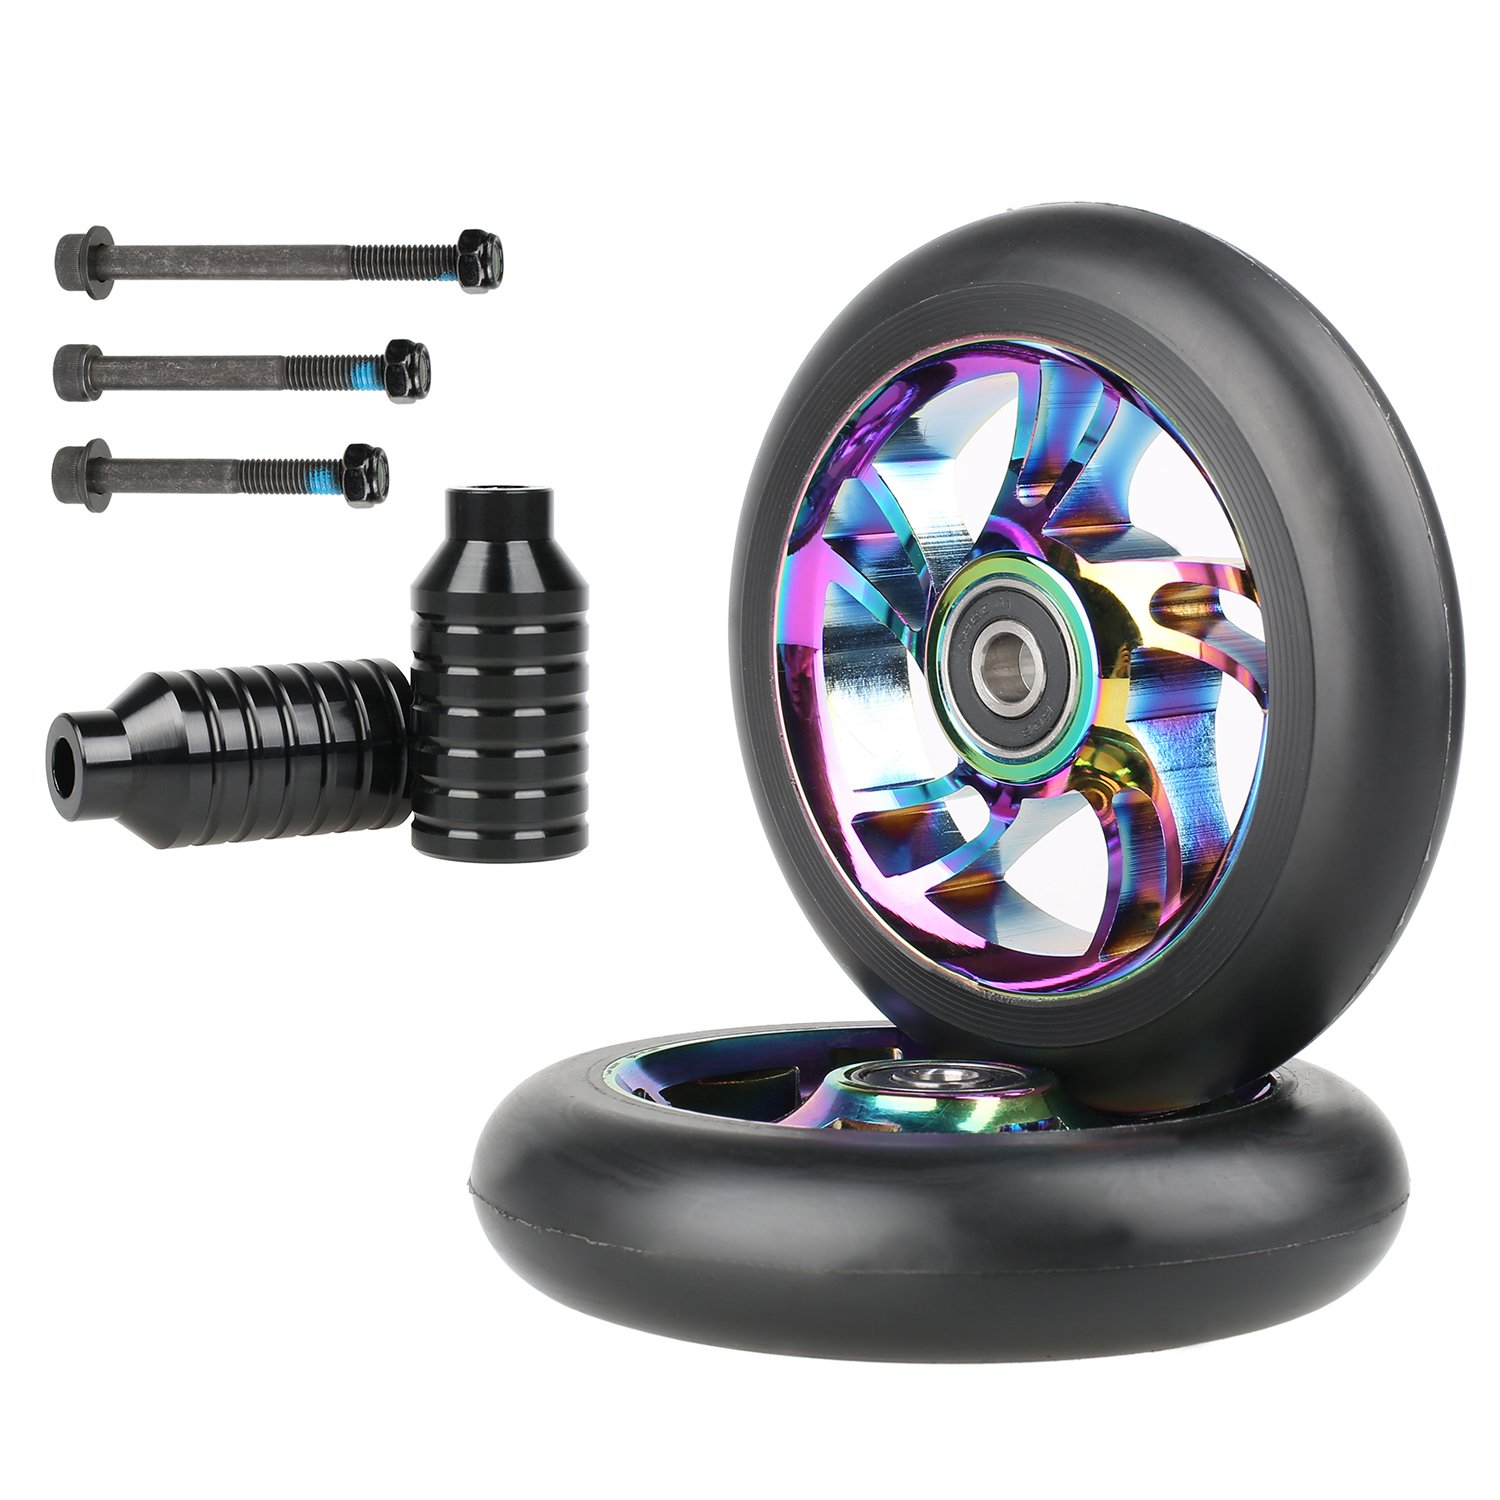 Kutrick Neo Chrome Complete 2pcs 100mm Replacement Pro Scooter Wheels with 2pcs Neo Scooter Peg Kit with 3pcs Axle